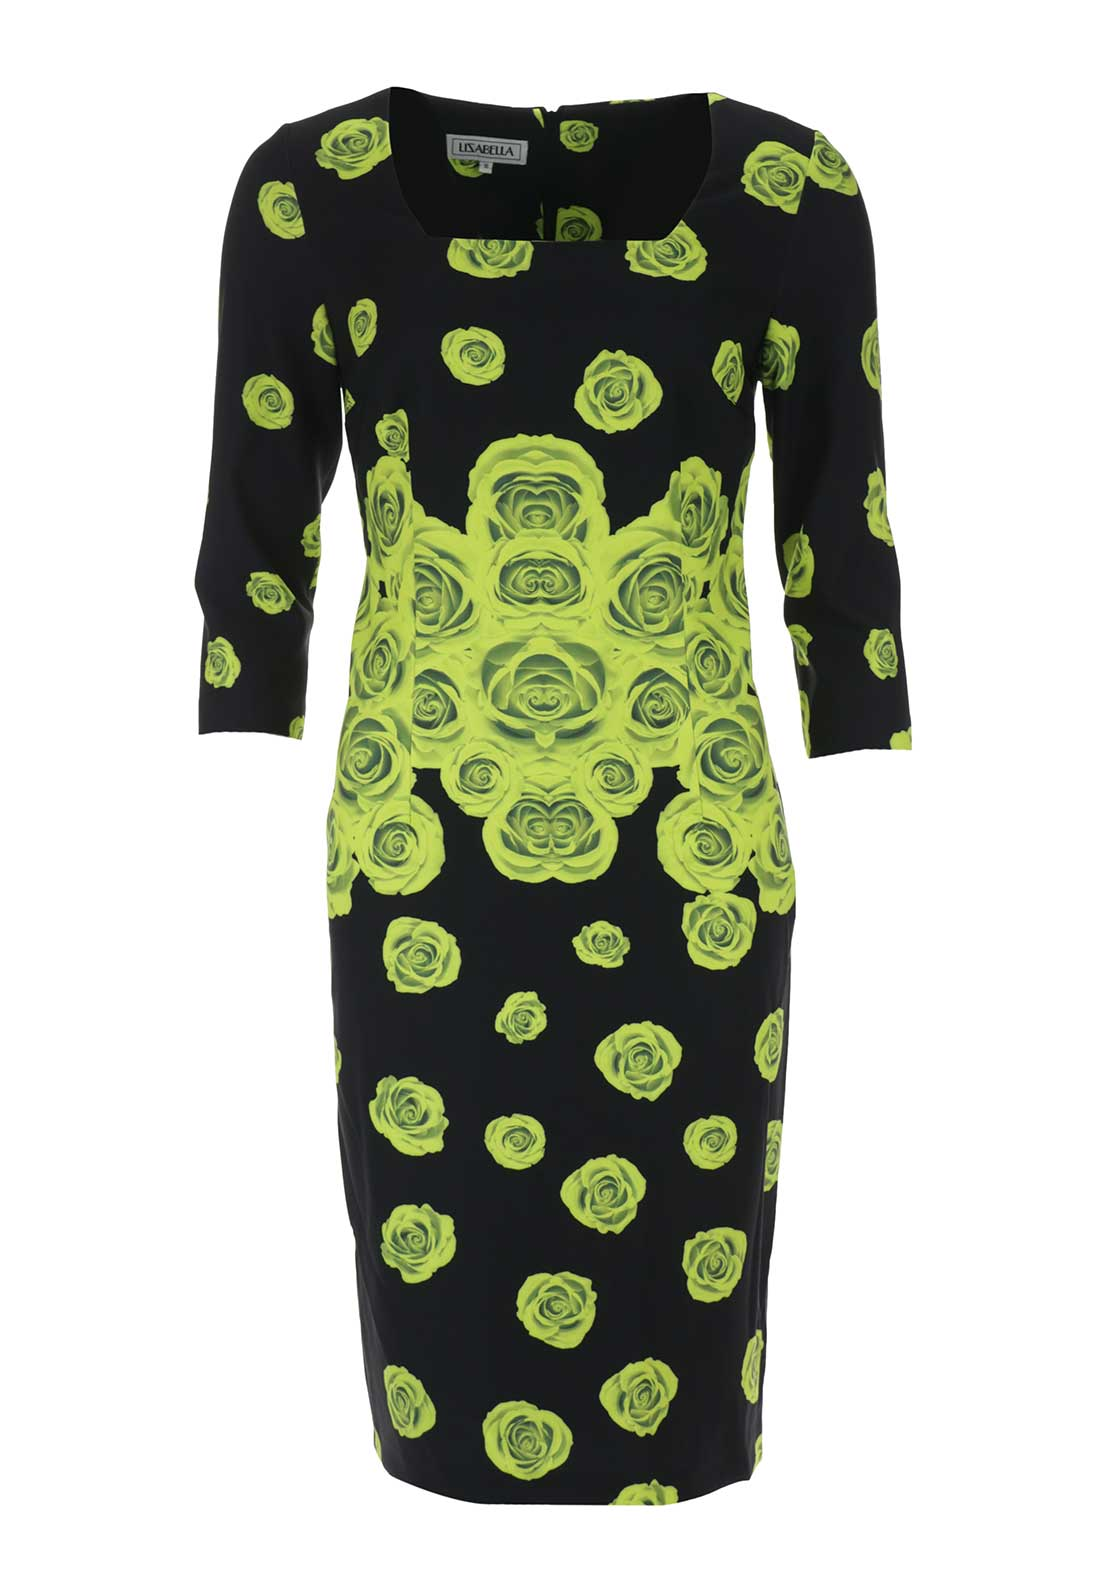 Izabella Rose Print Pencil Dress, Lime and Black